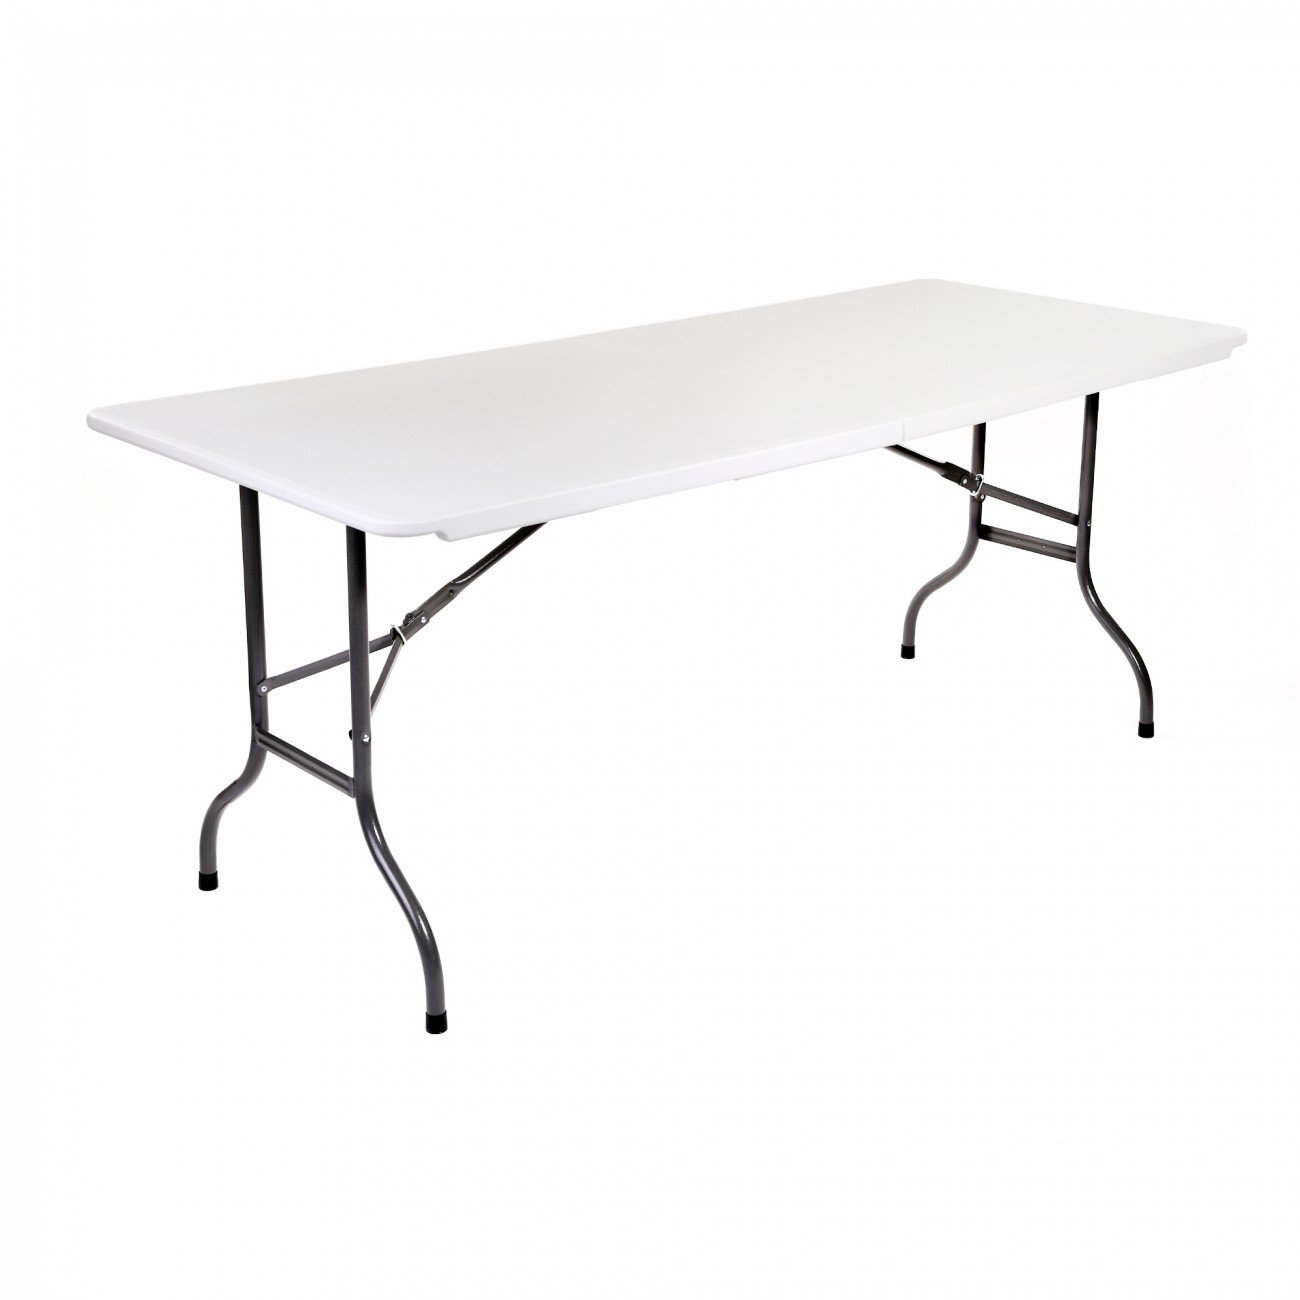 Table pliable pas cher - Table de jardin aluminium pliable ...